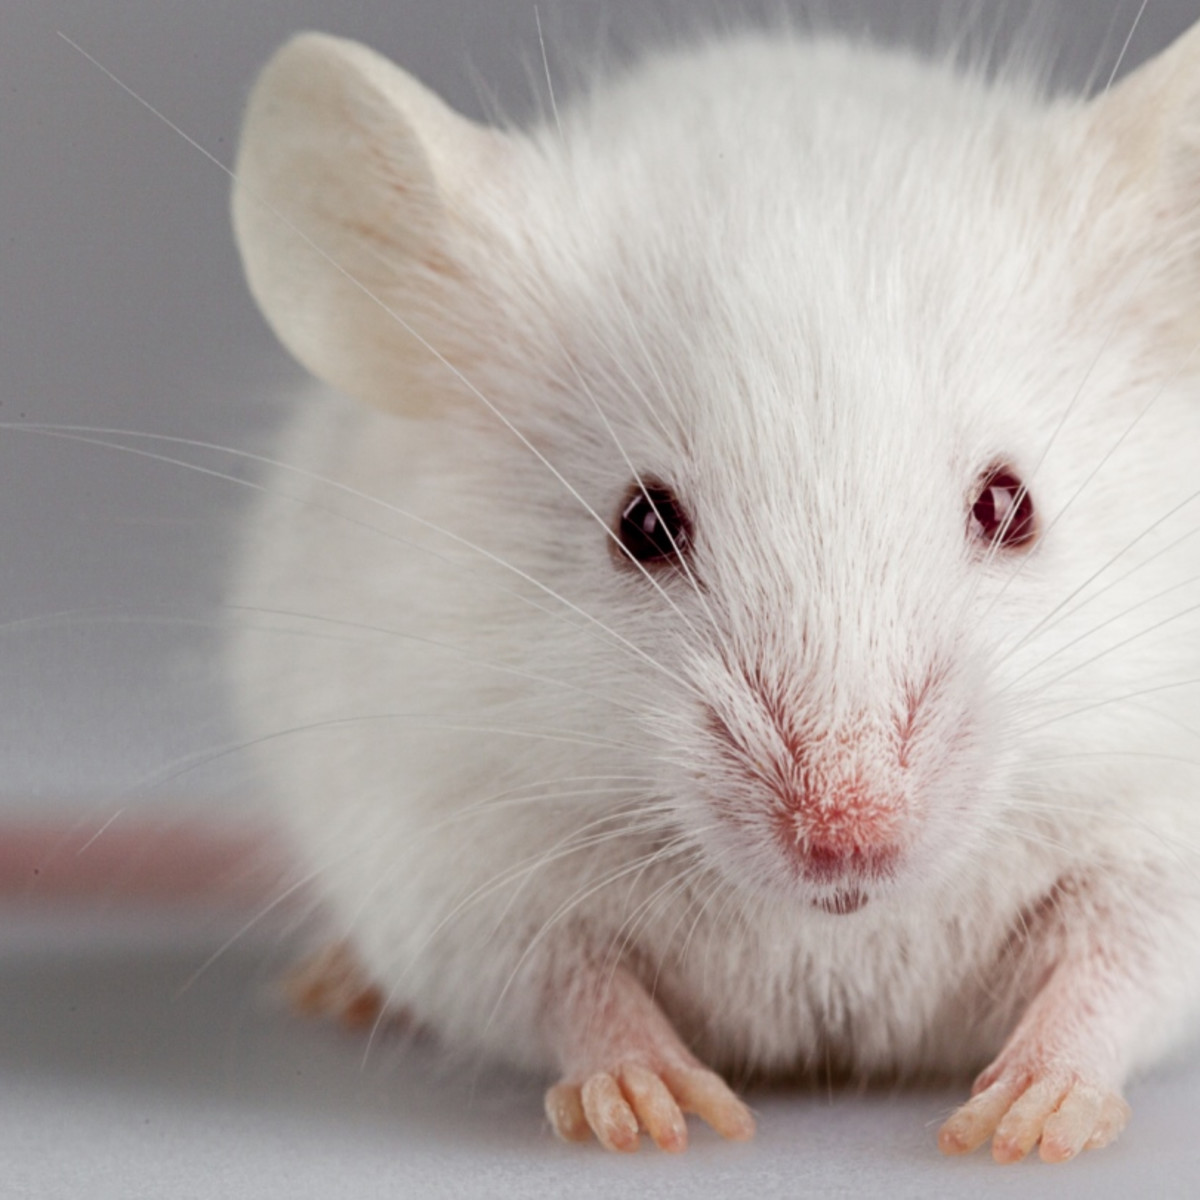 11 Facts About Animal Testing | DoSomething org